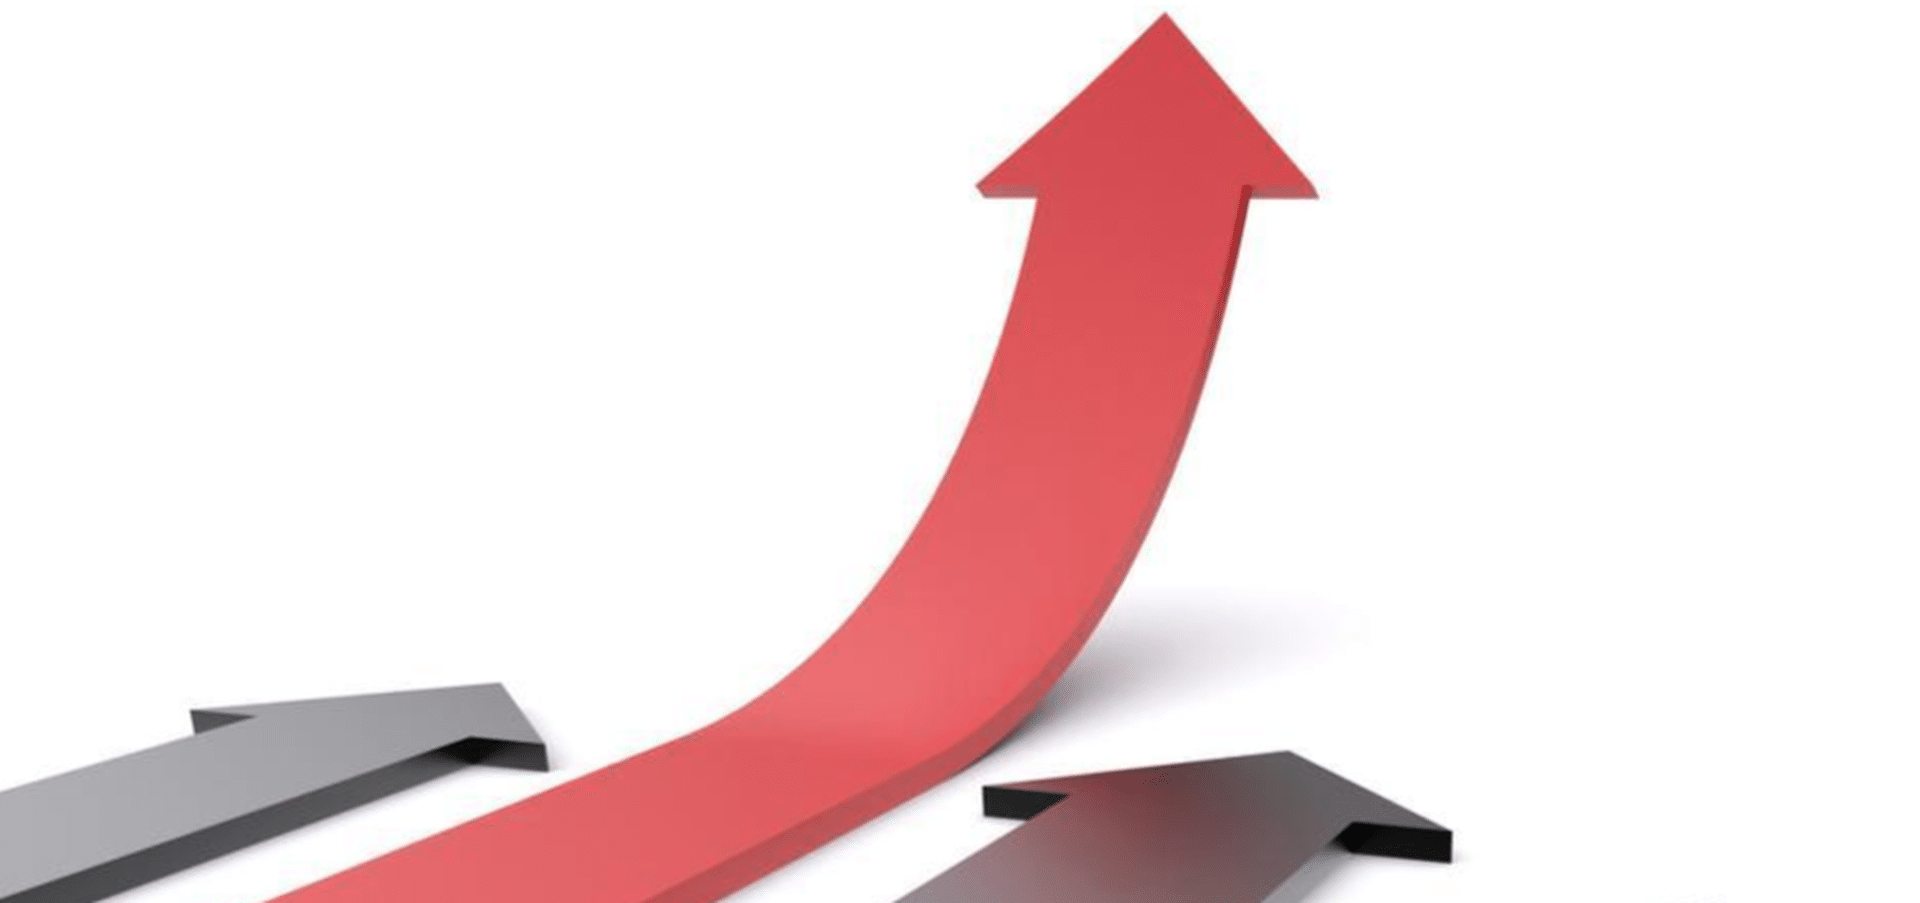 Stock image of an arrow pointing upward, signifying growth